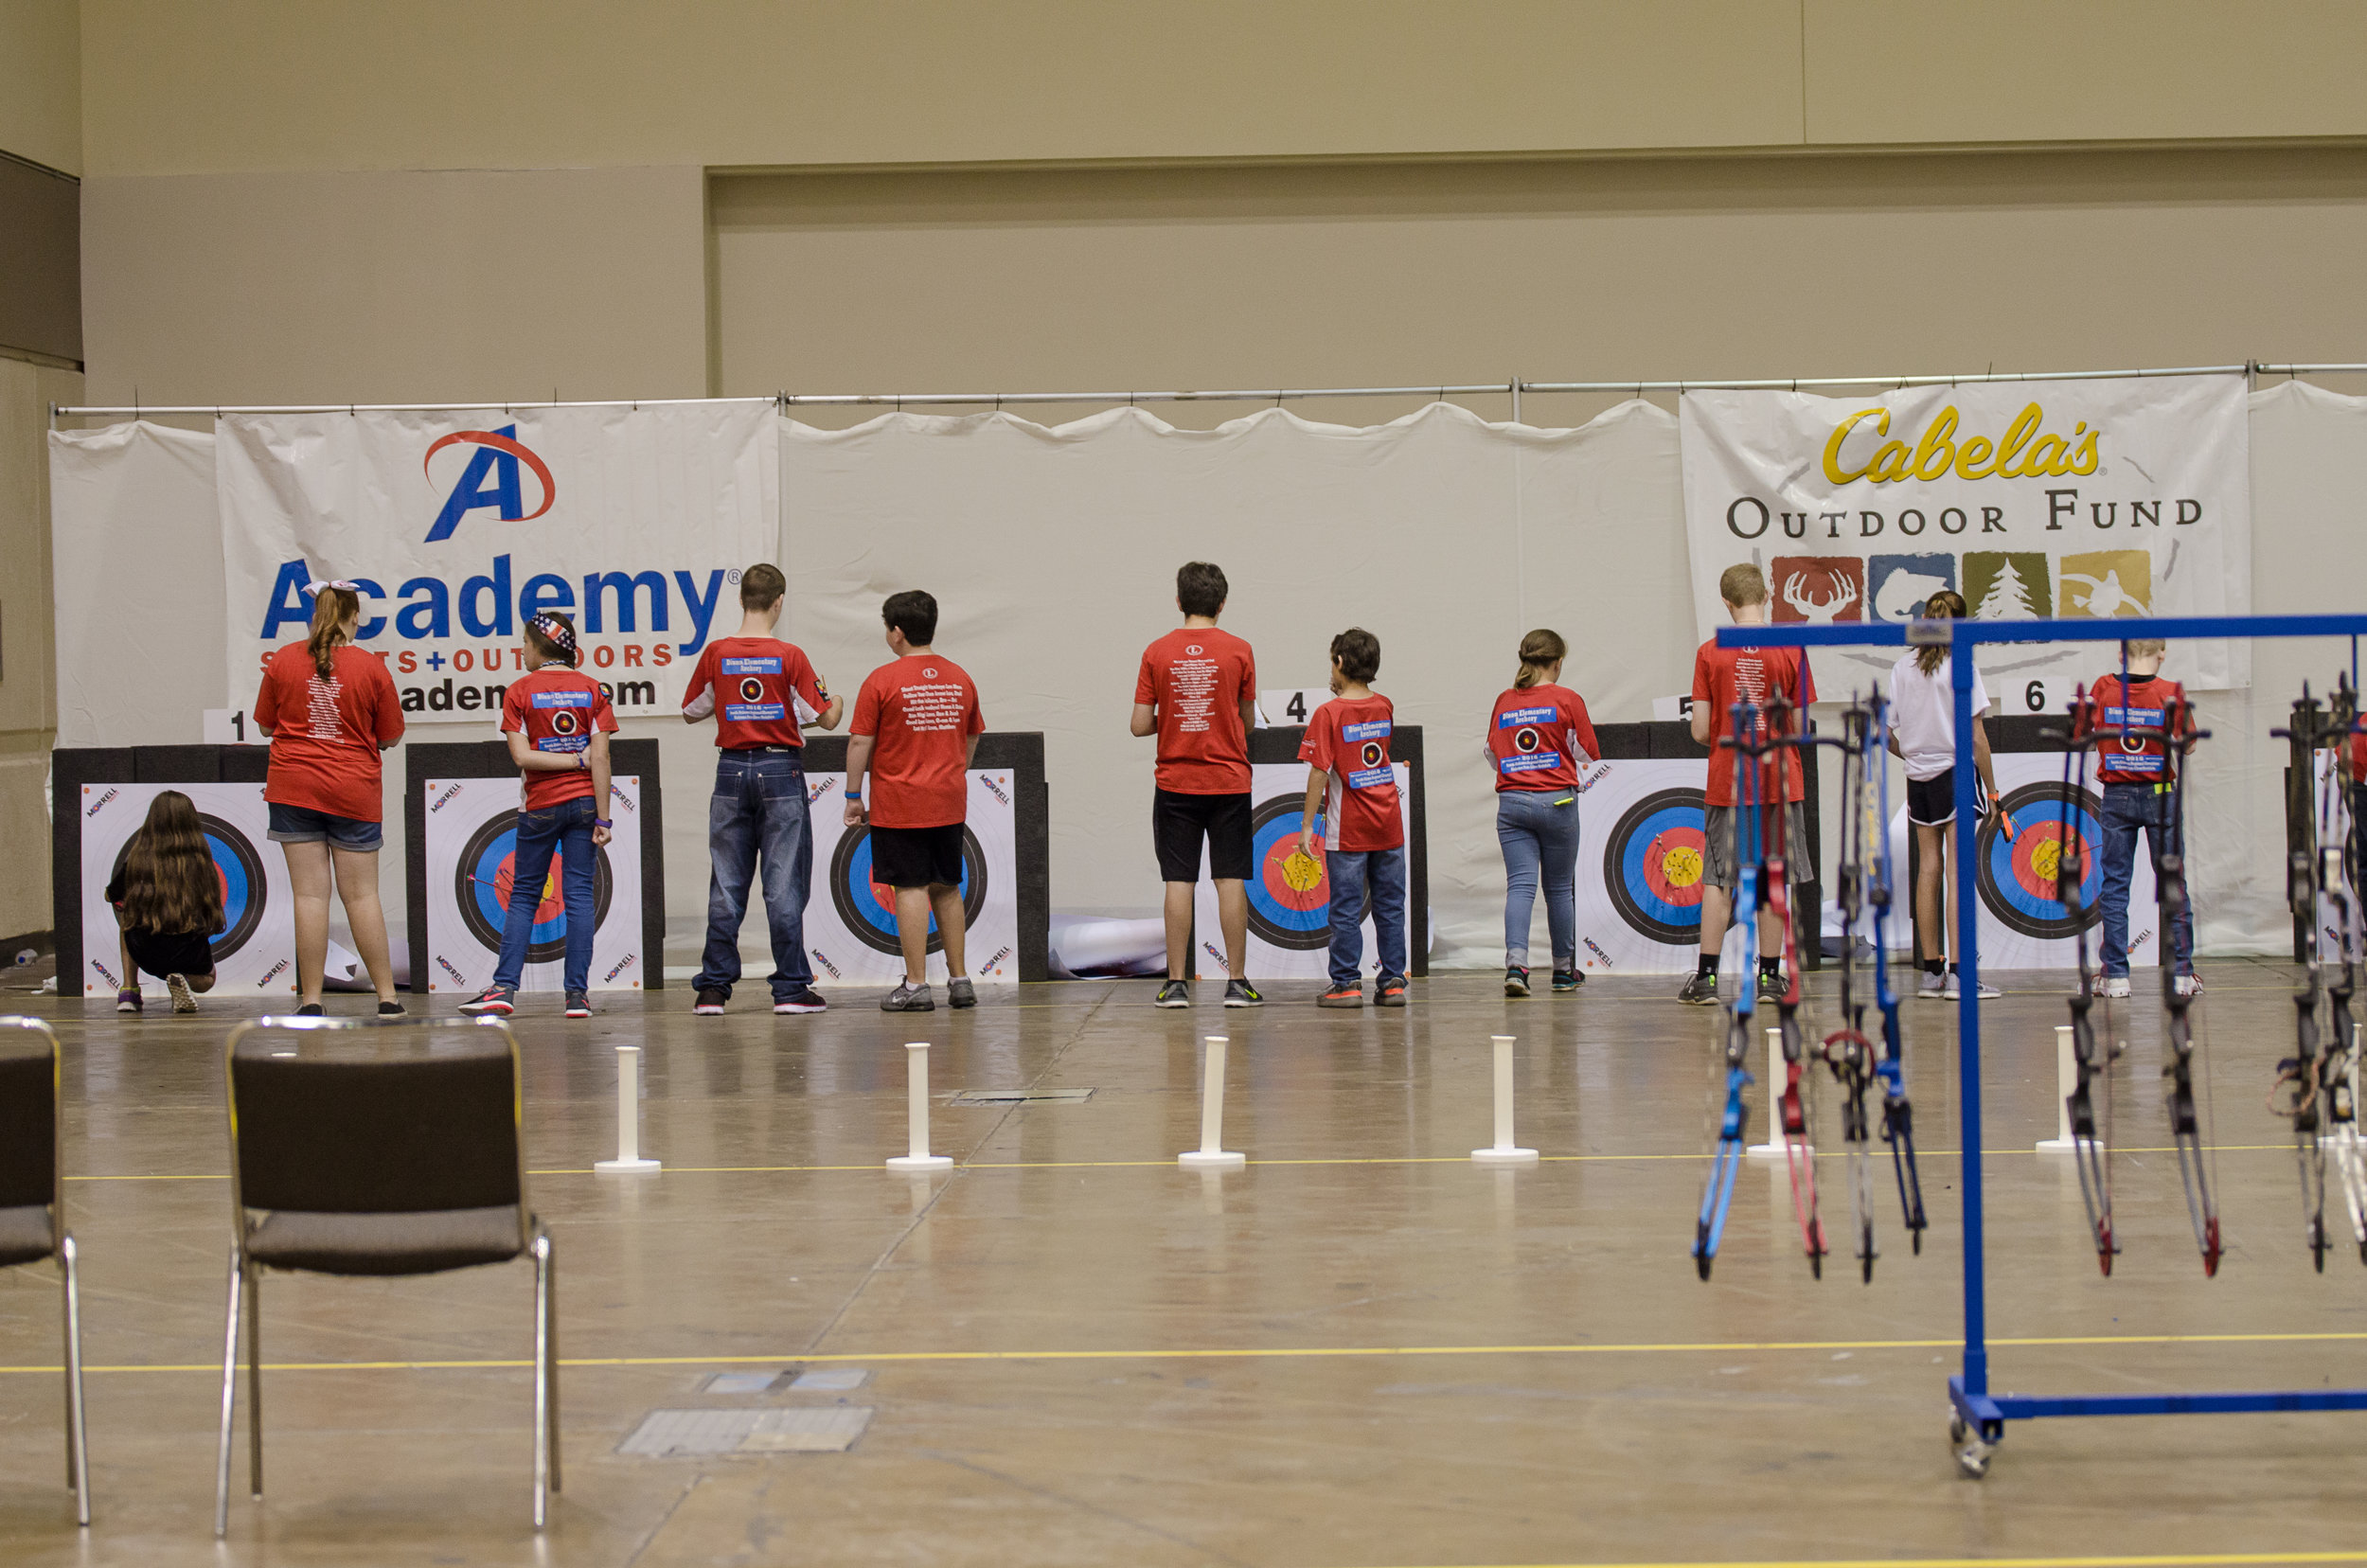 Dixon Elementary Archery Mobile Alabama